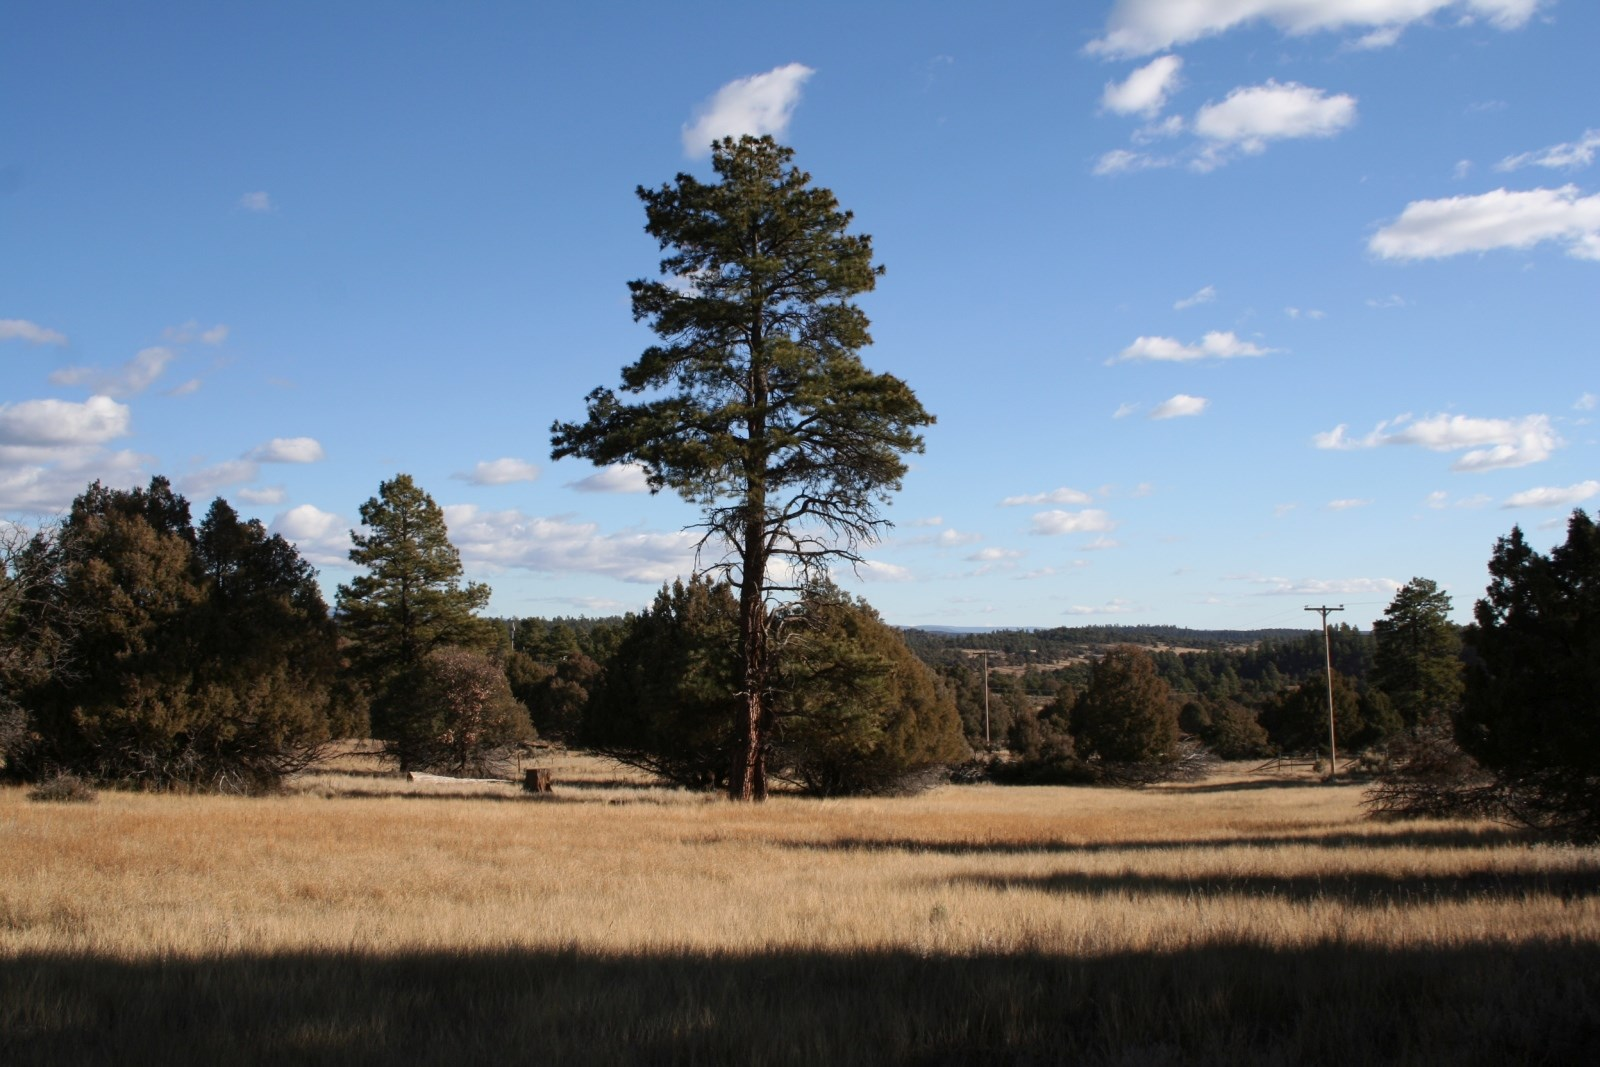 Land for Sale Near Heron Lake NM with Well and Electricty